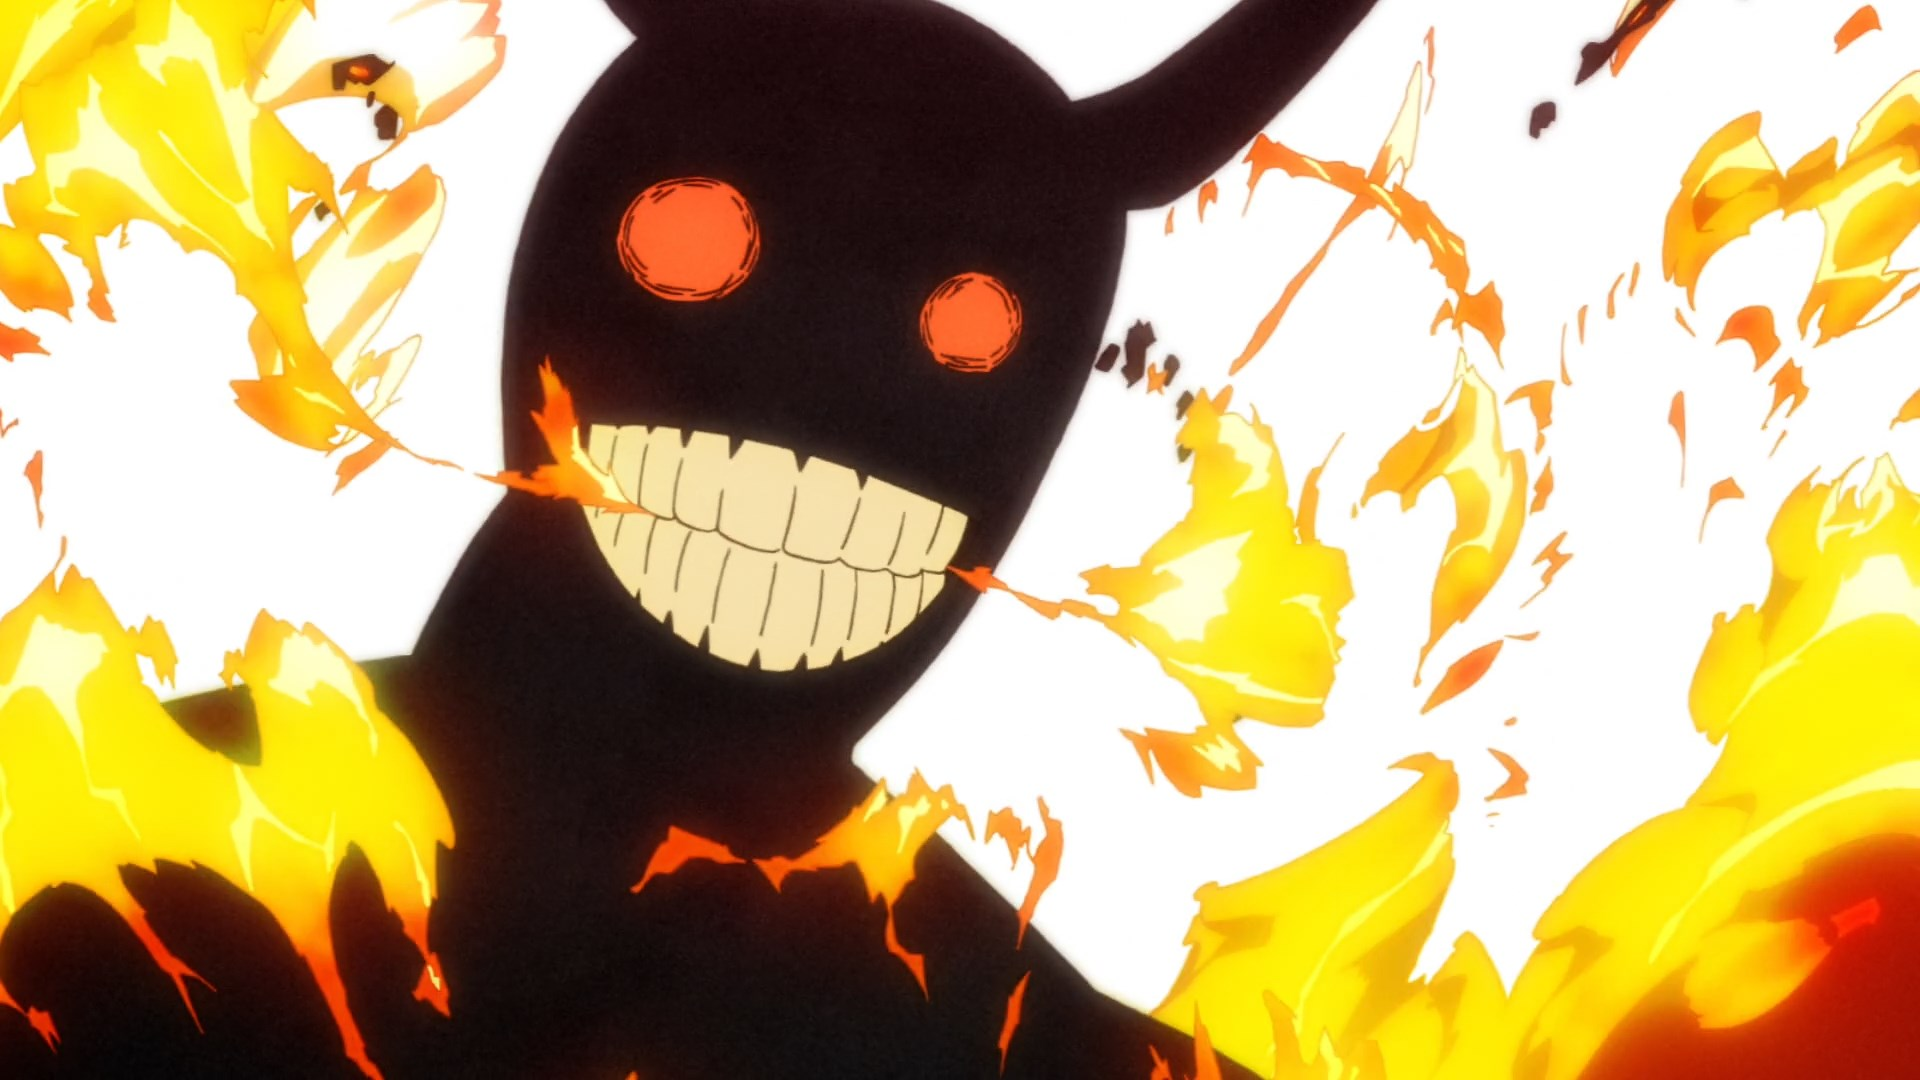 Fire Force Wallpaper Phone Hd Anime Wallpapers Support us by sharing the content, upvoting wallpapers on the page or sending your own. fire force wallpaper phone hd anime